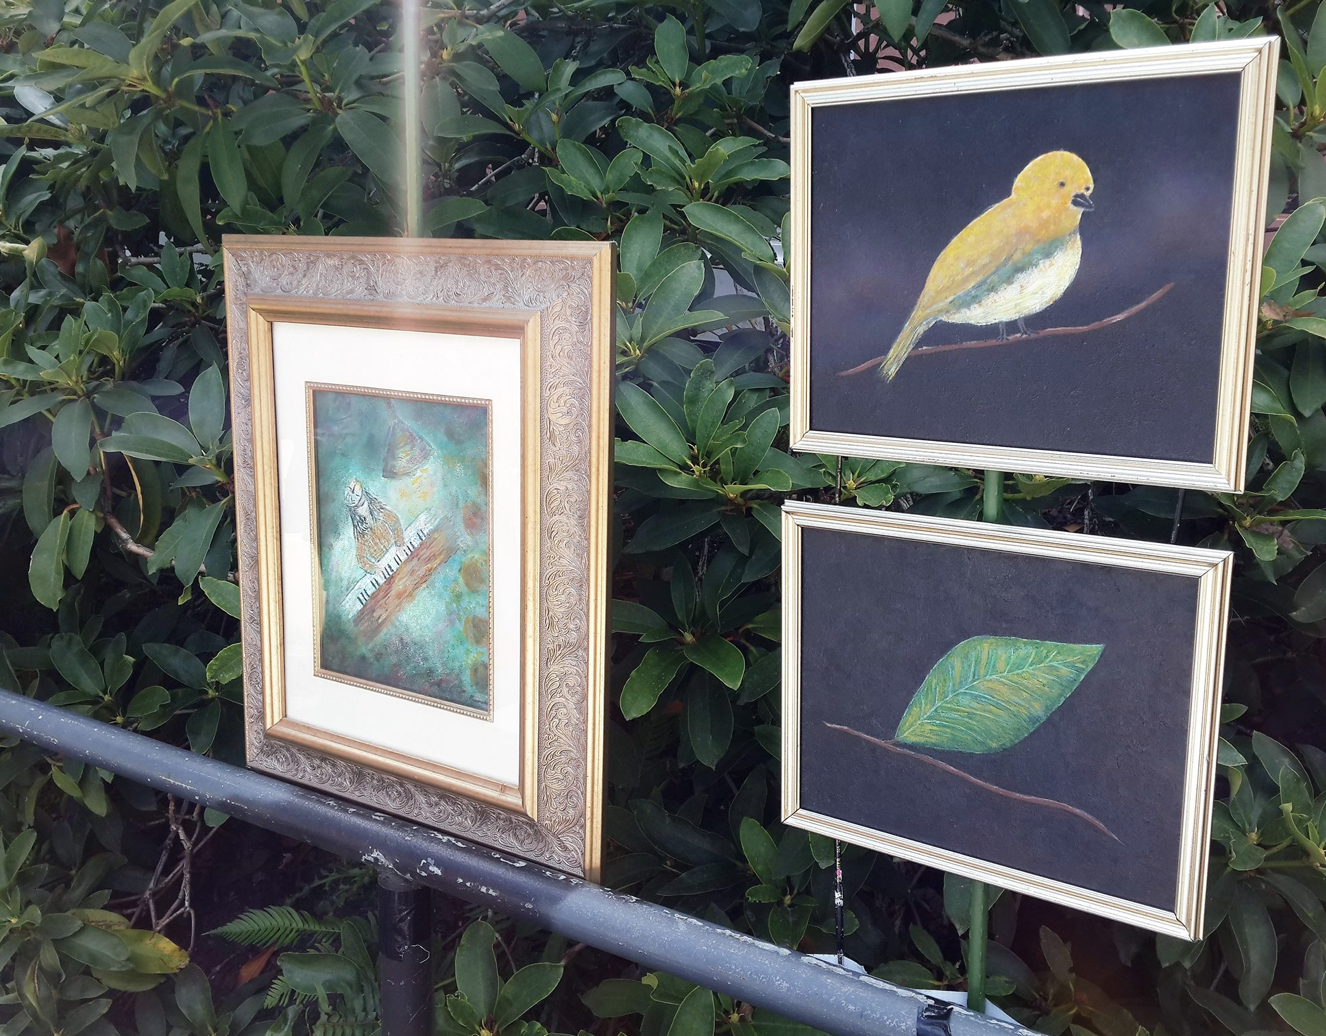 Sylvia Andrews' college artworks came to life against the garden.